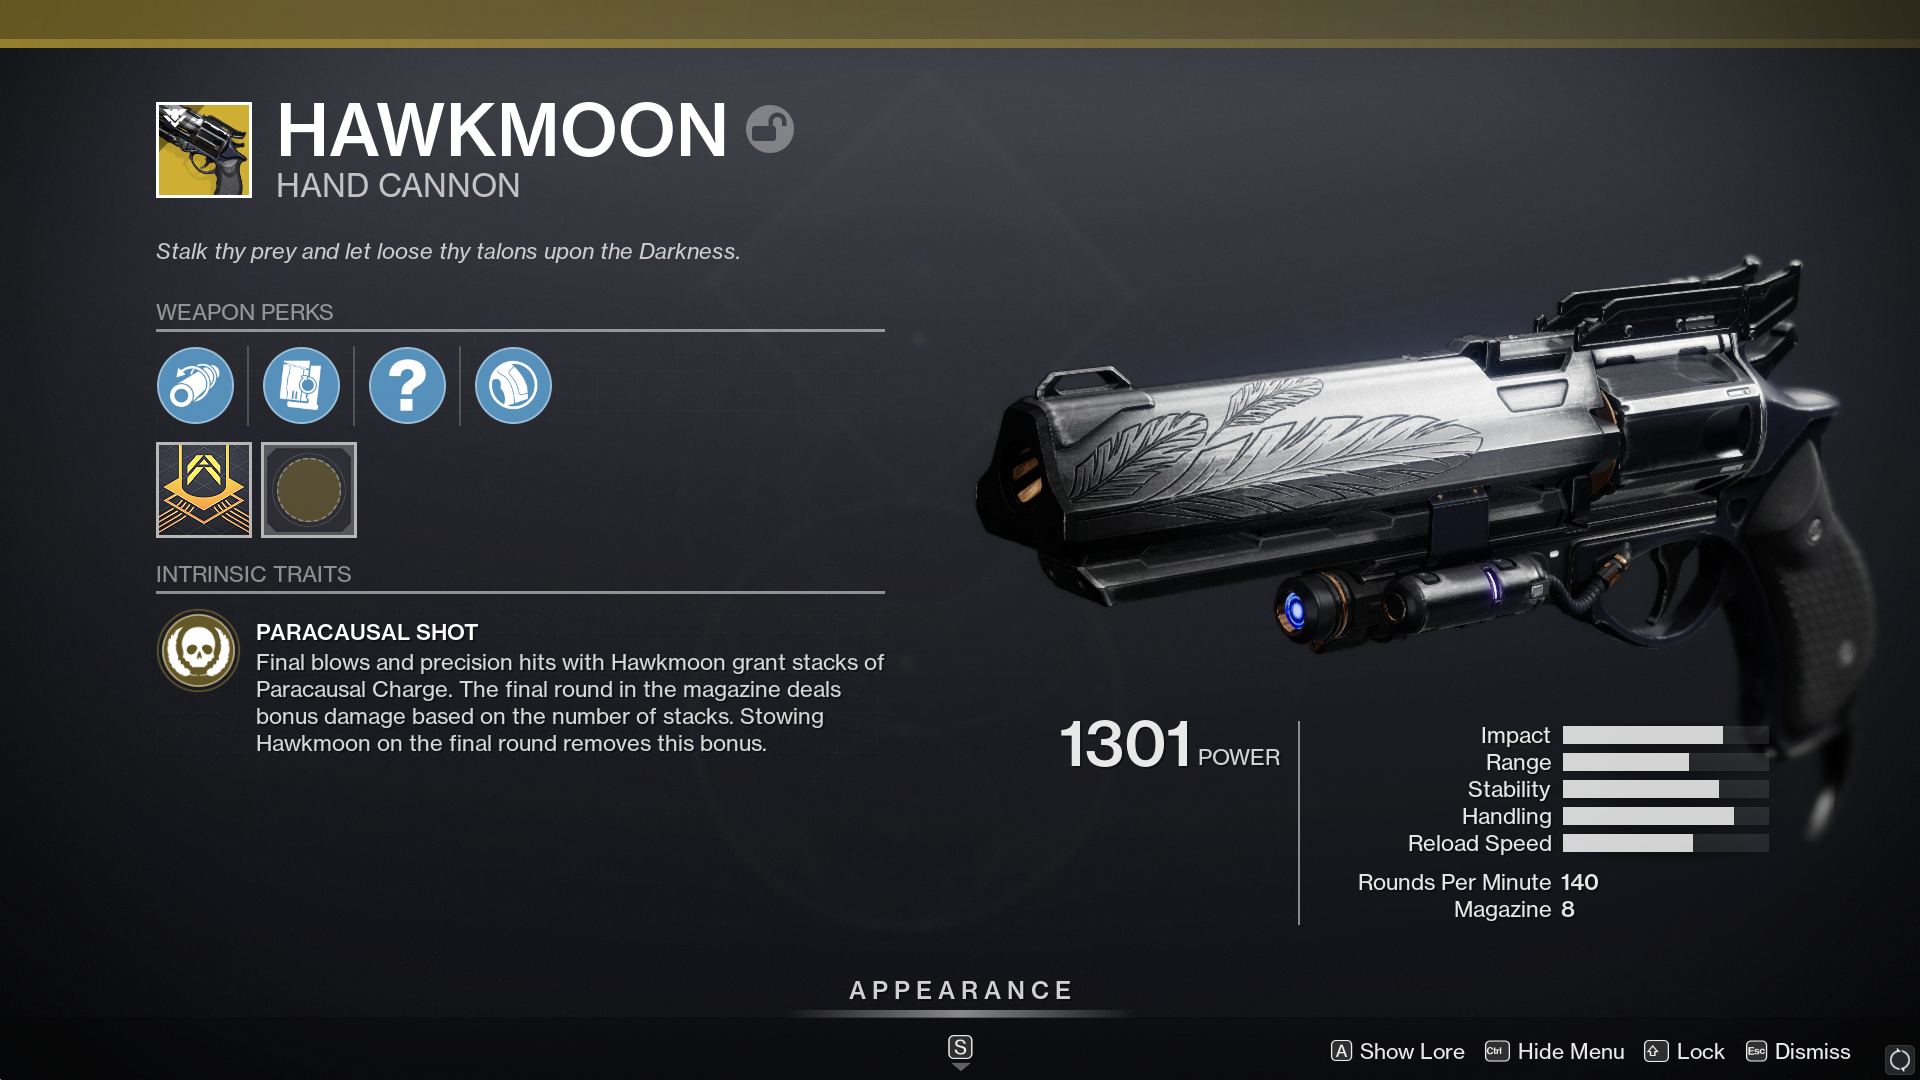 Destiny 2's Hawkmoon features random rolls and a new intrinsic perk compared to the original version